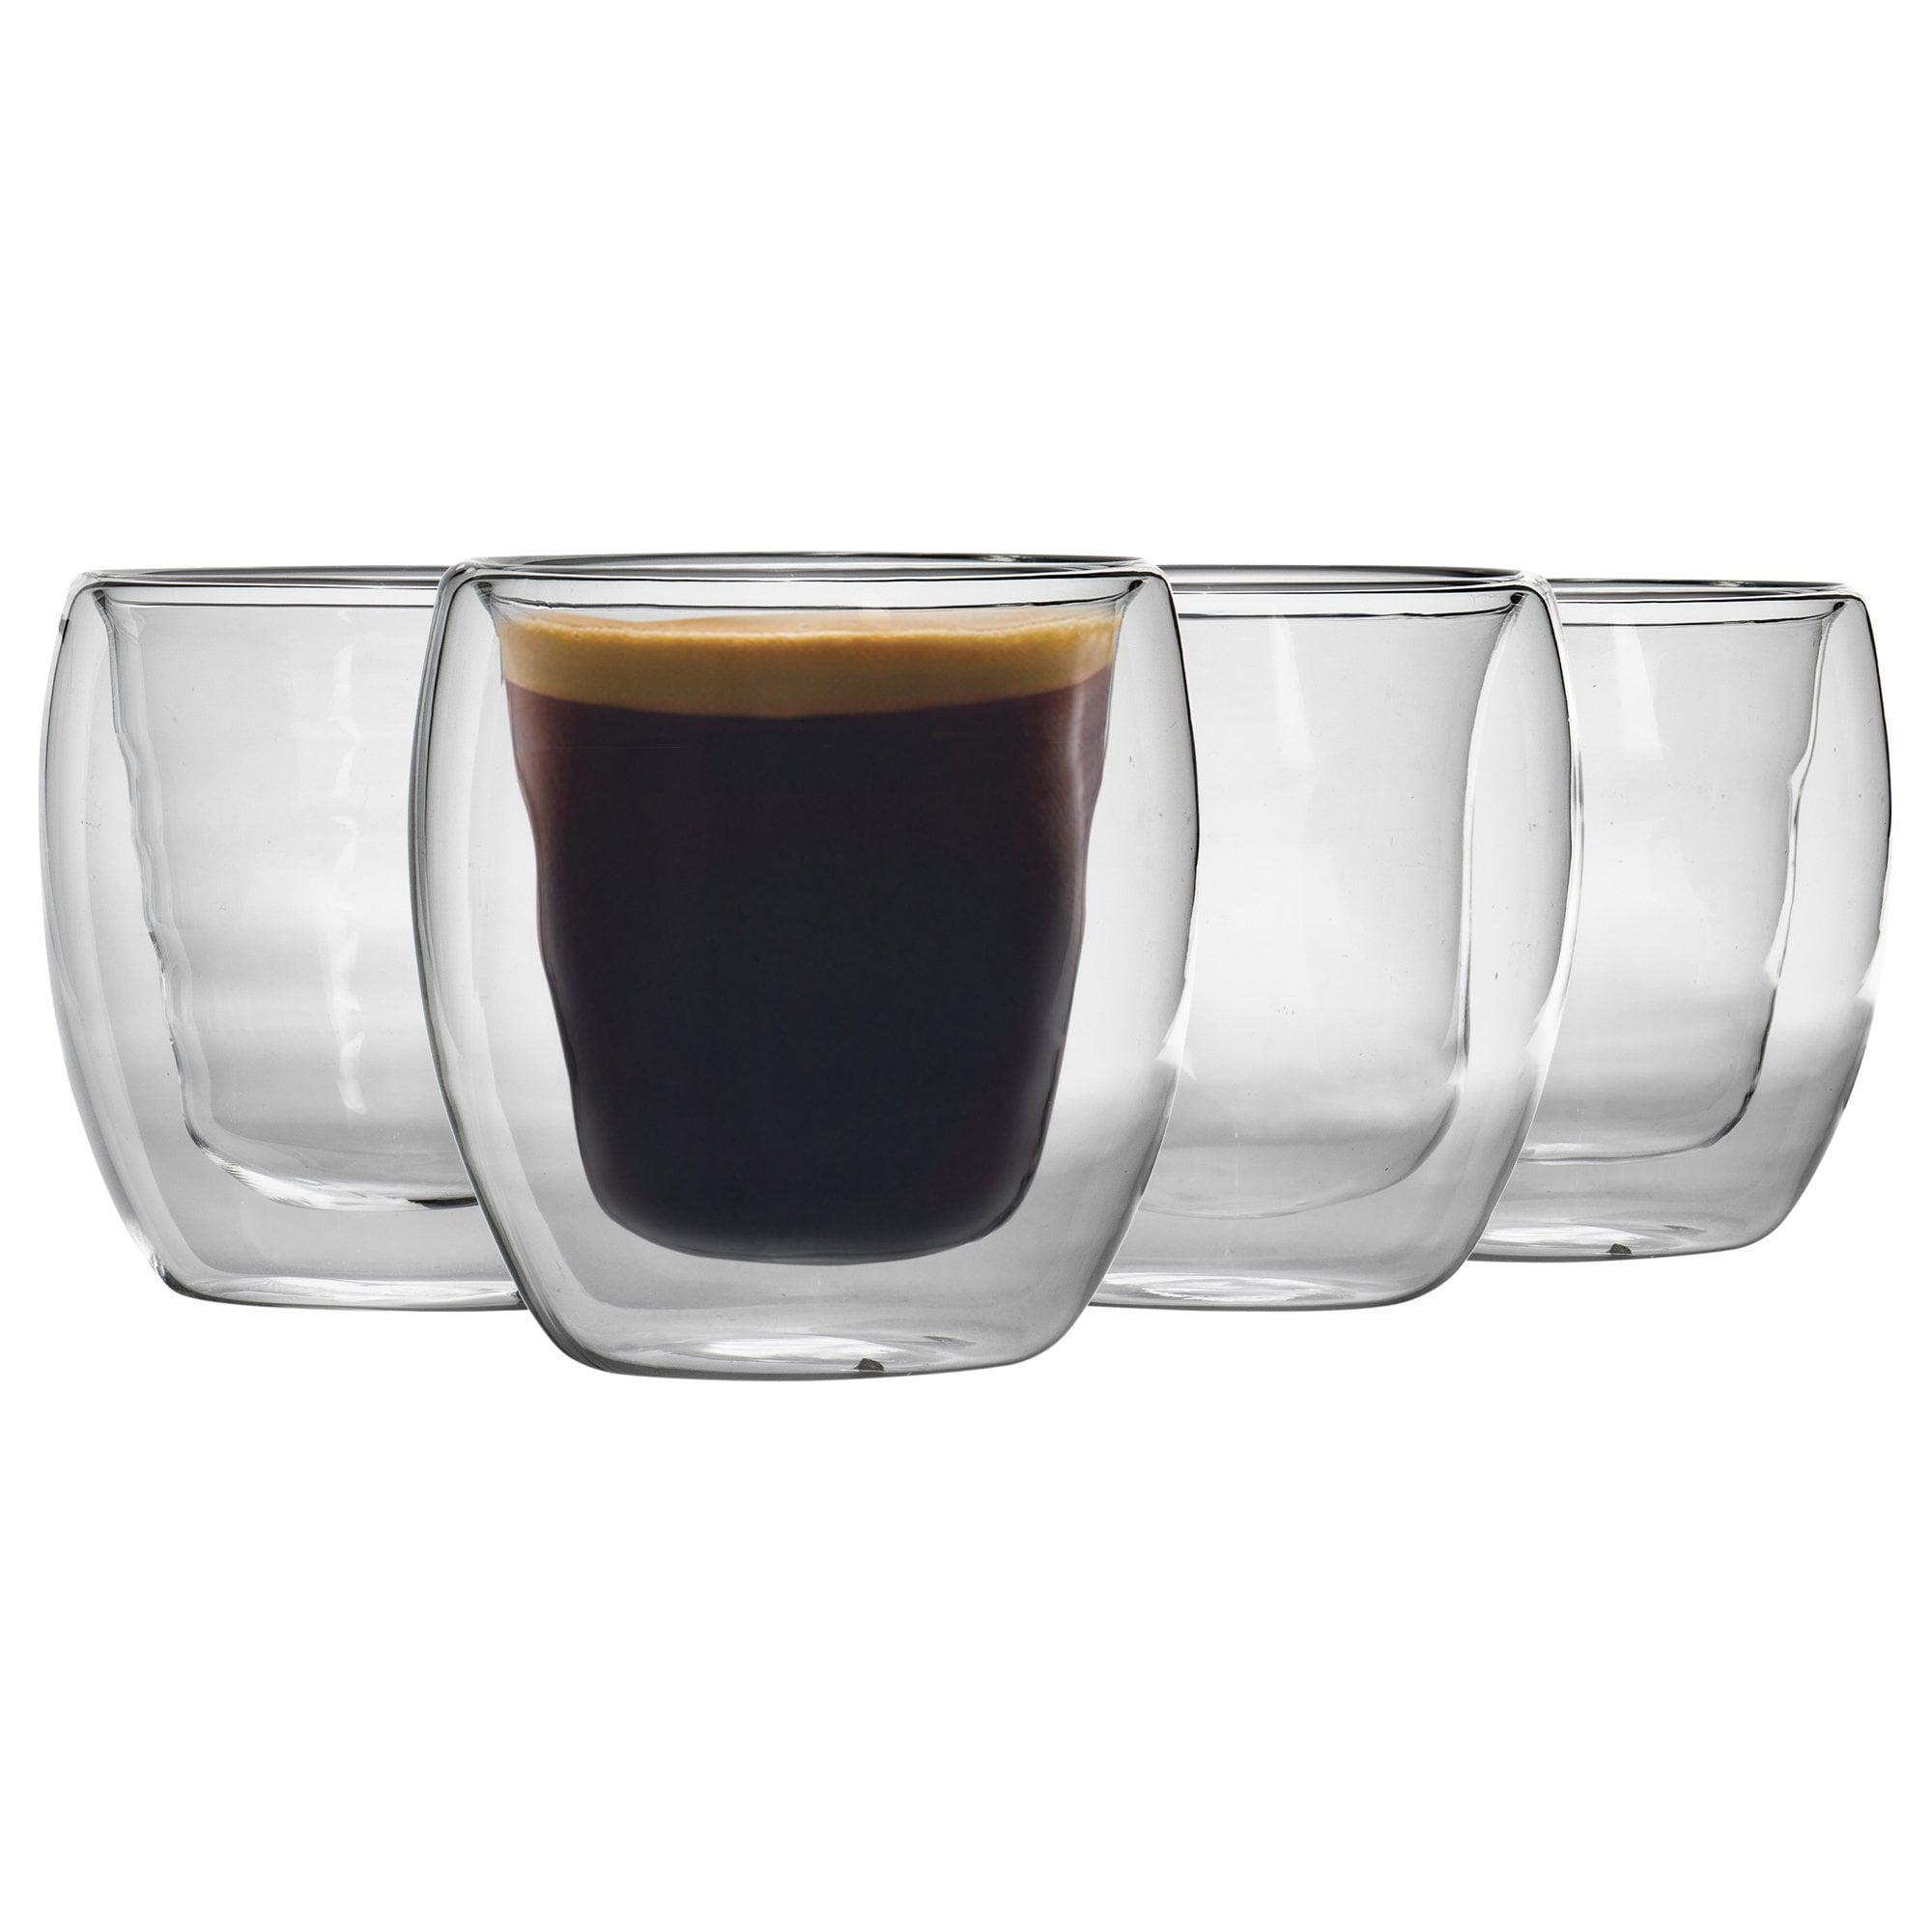 Details about Double Walled Insulated Coffee Mug Glasses Thermal Tea Coffee Cup Heat resistant